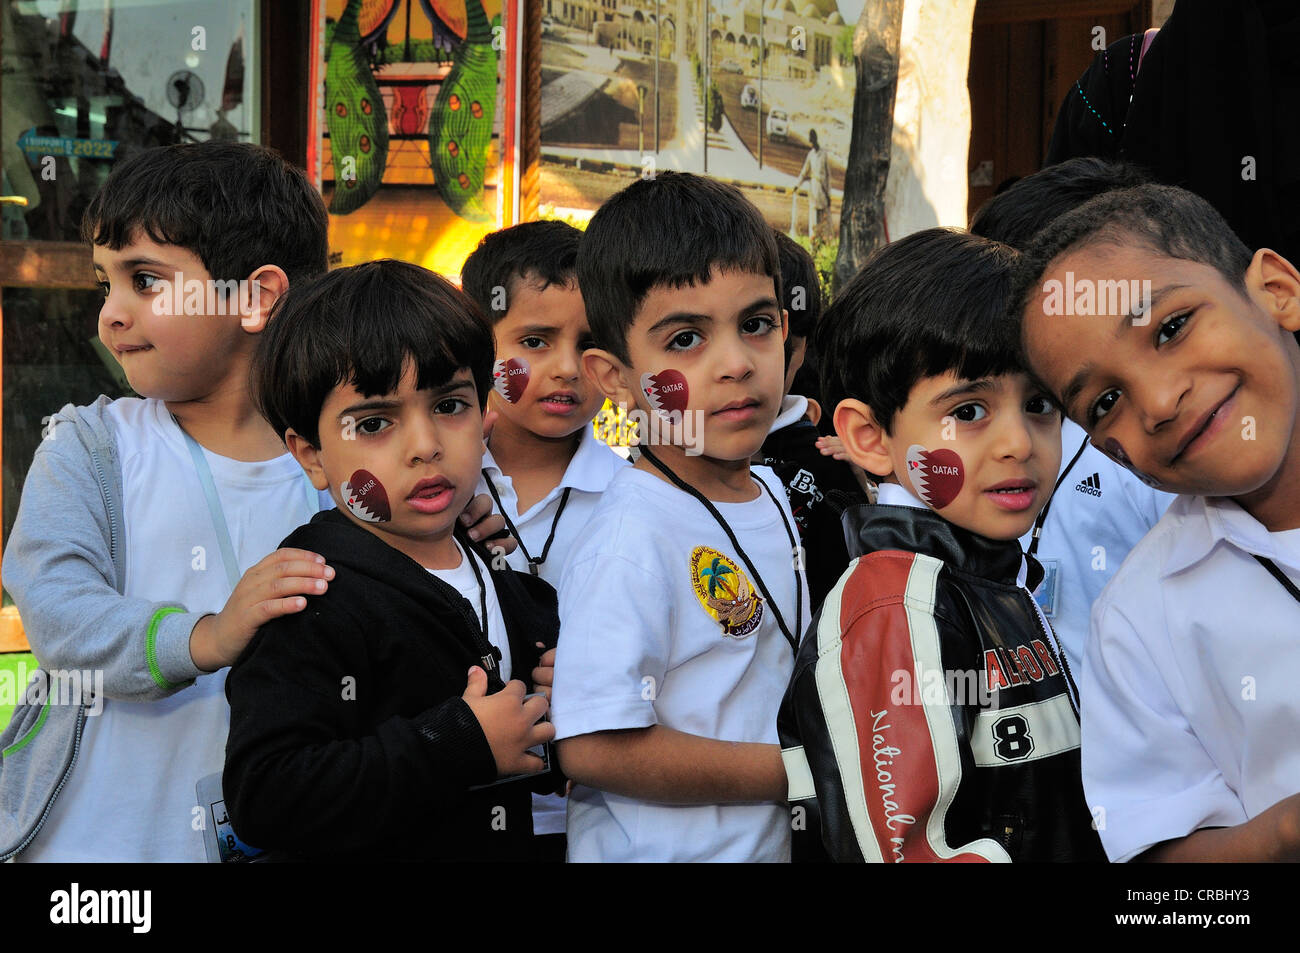 Kindergarten, excursion in Souq Waqif, Doha, Qatar, Middle East - Stock Image